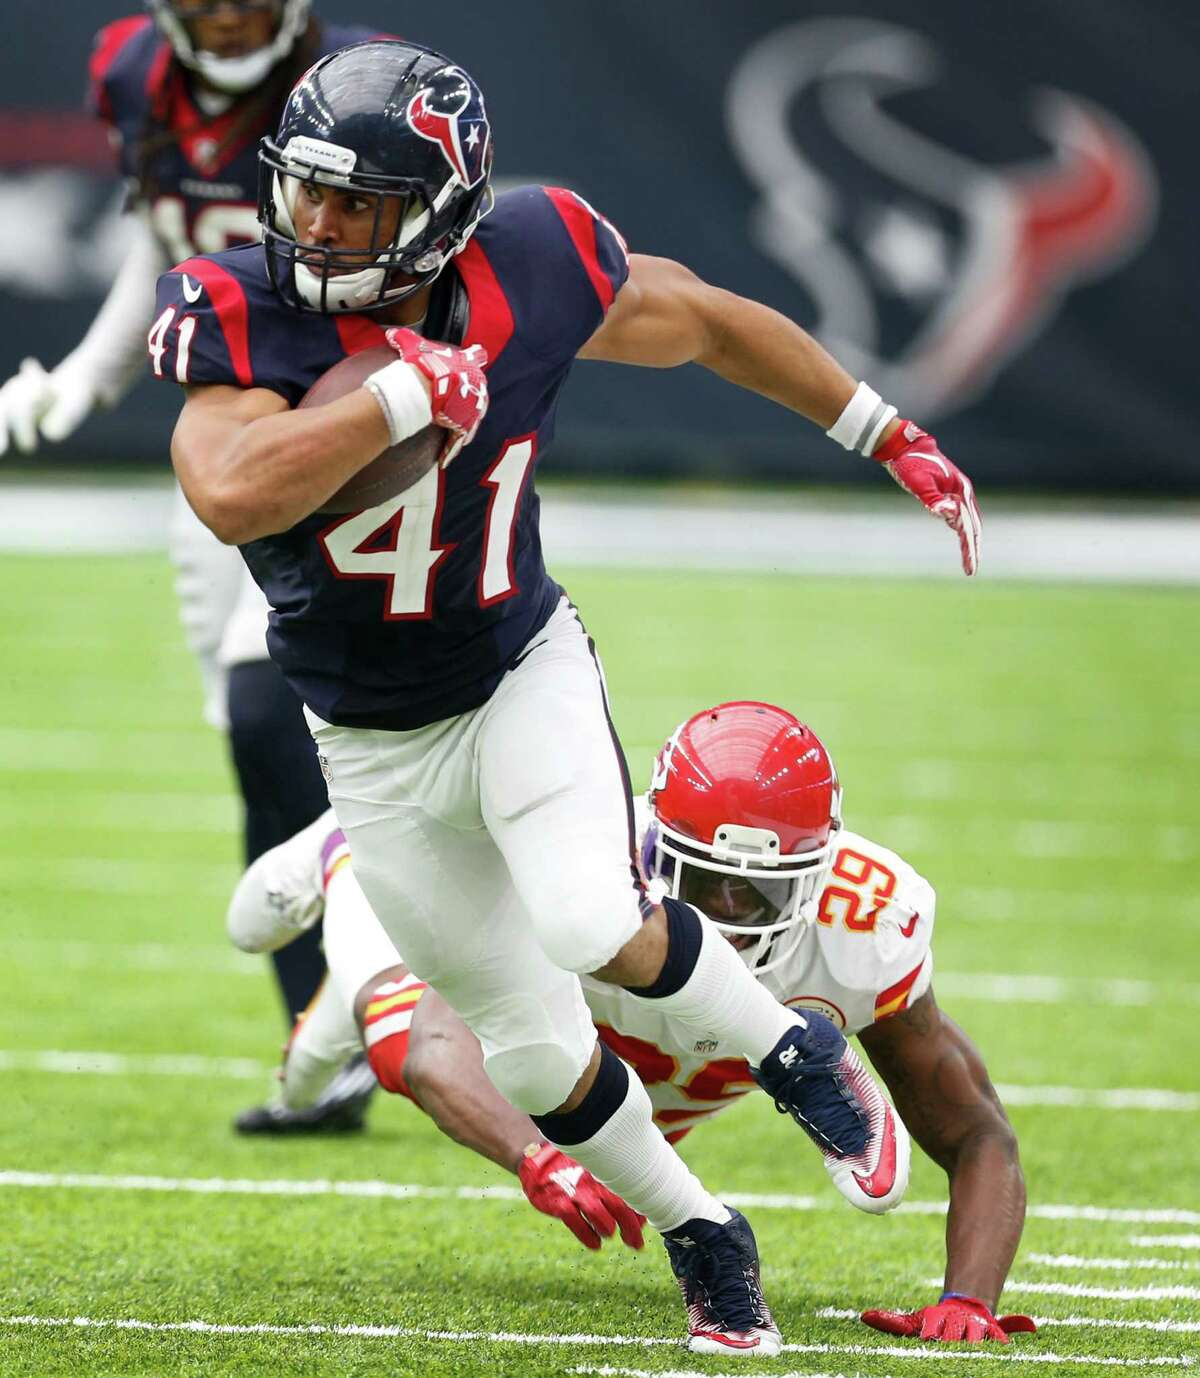 Backup running back Jonathan Grimes won't be contributing to the Texans' offense for about a month after suffering a cracked fibula in the Patriots game.